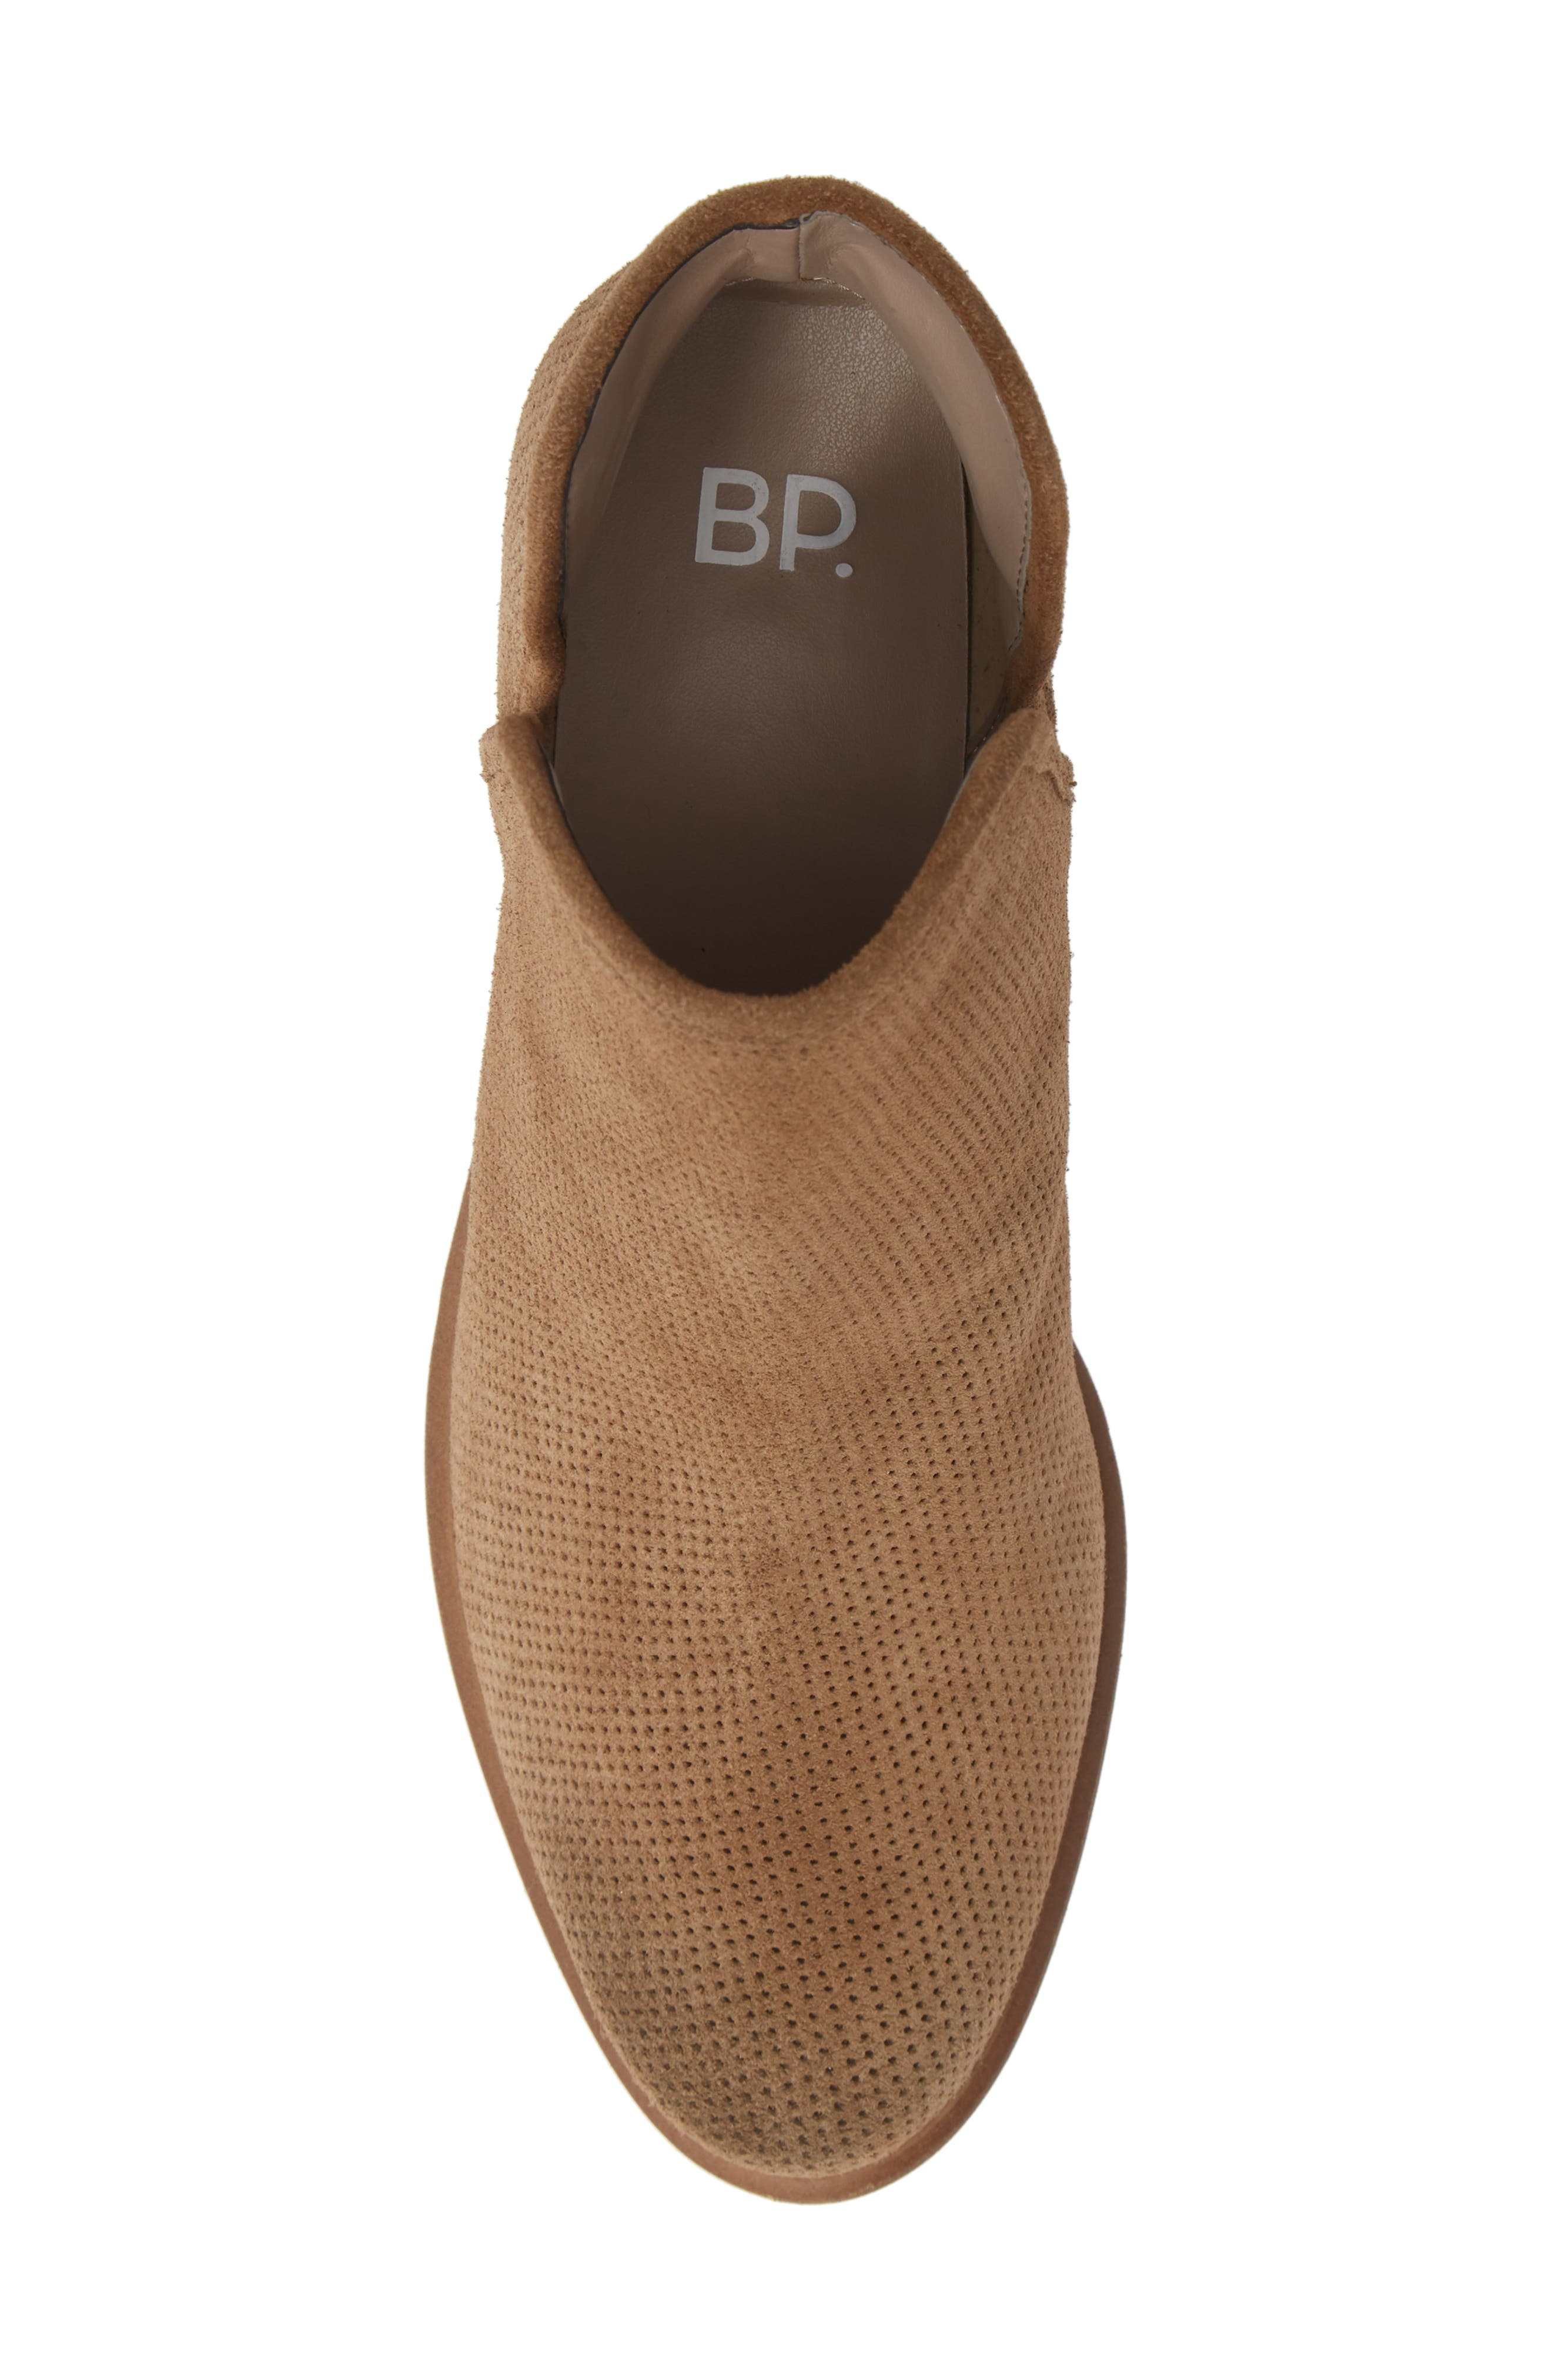 ,                             BP Barris Block Heel Bootie,                             Alternate thumbnail 29, color,                             204